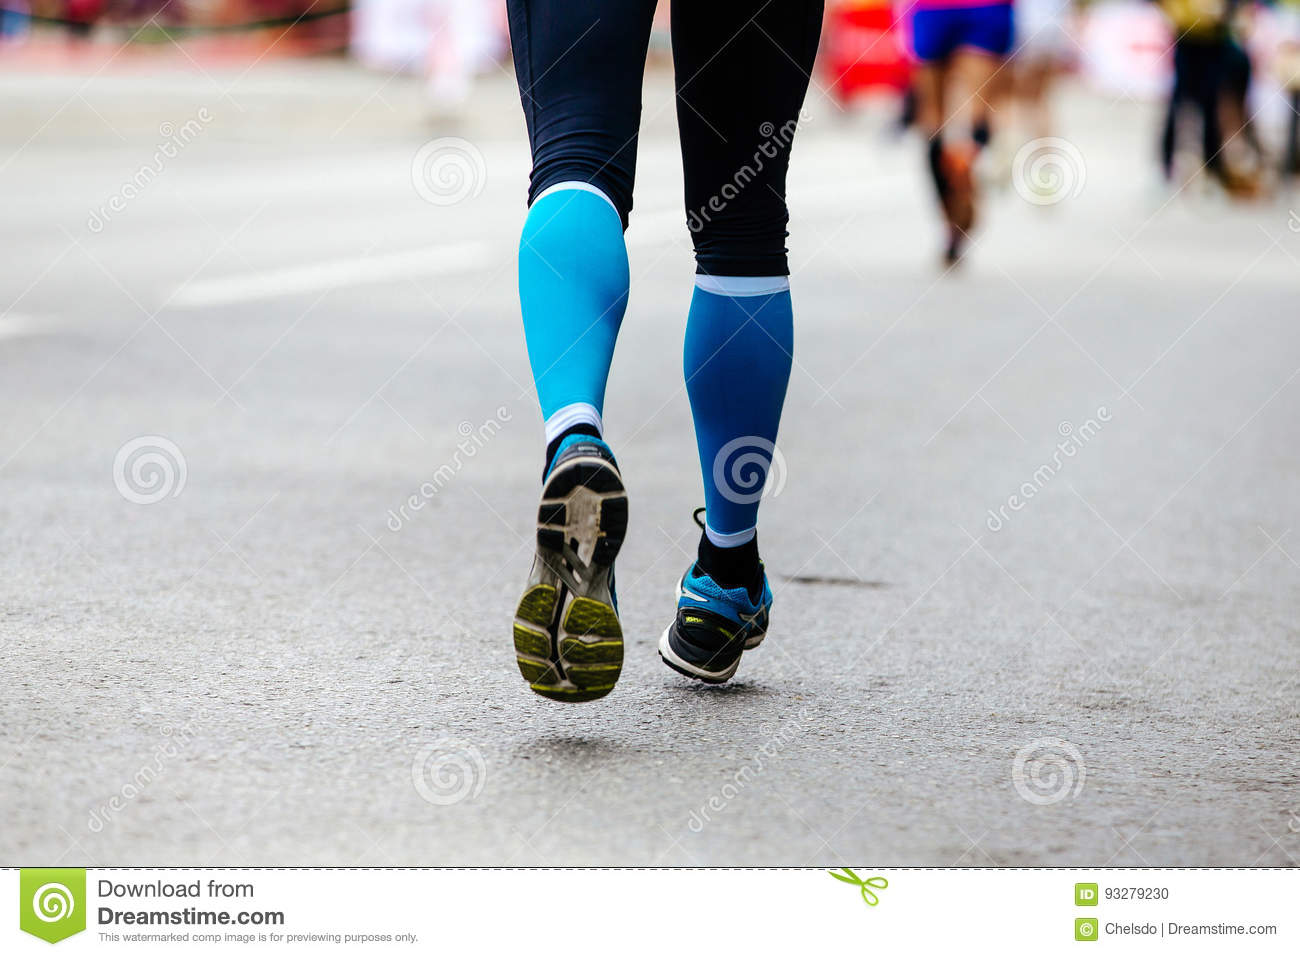 a6f479f0be Back feet woman runner stock photo. Image of endurance - 93279230